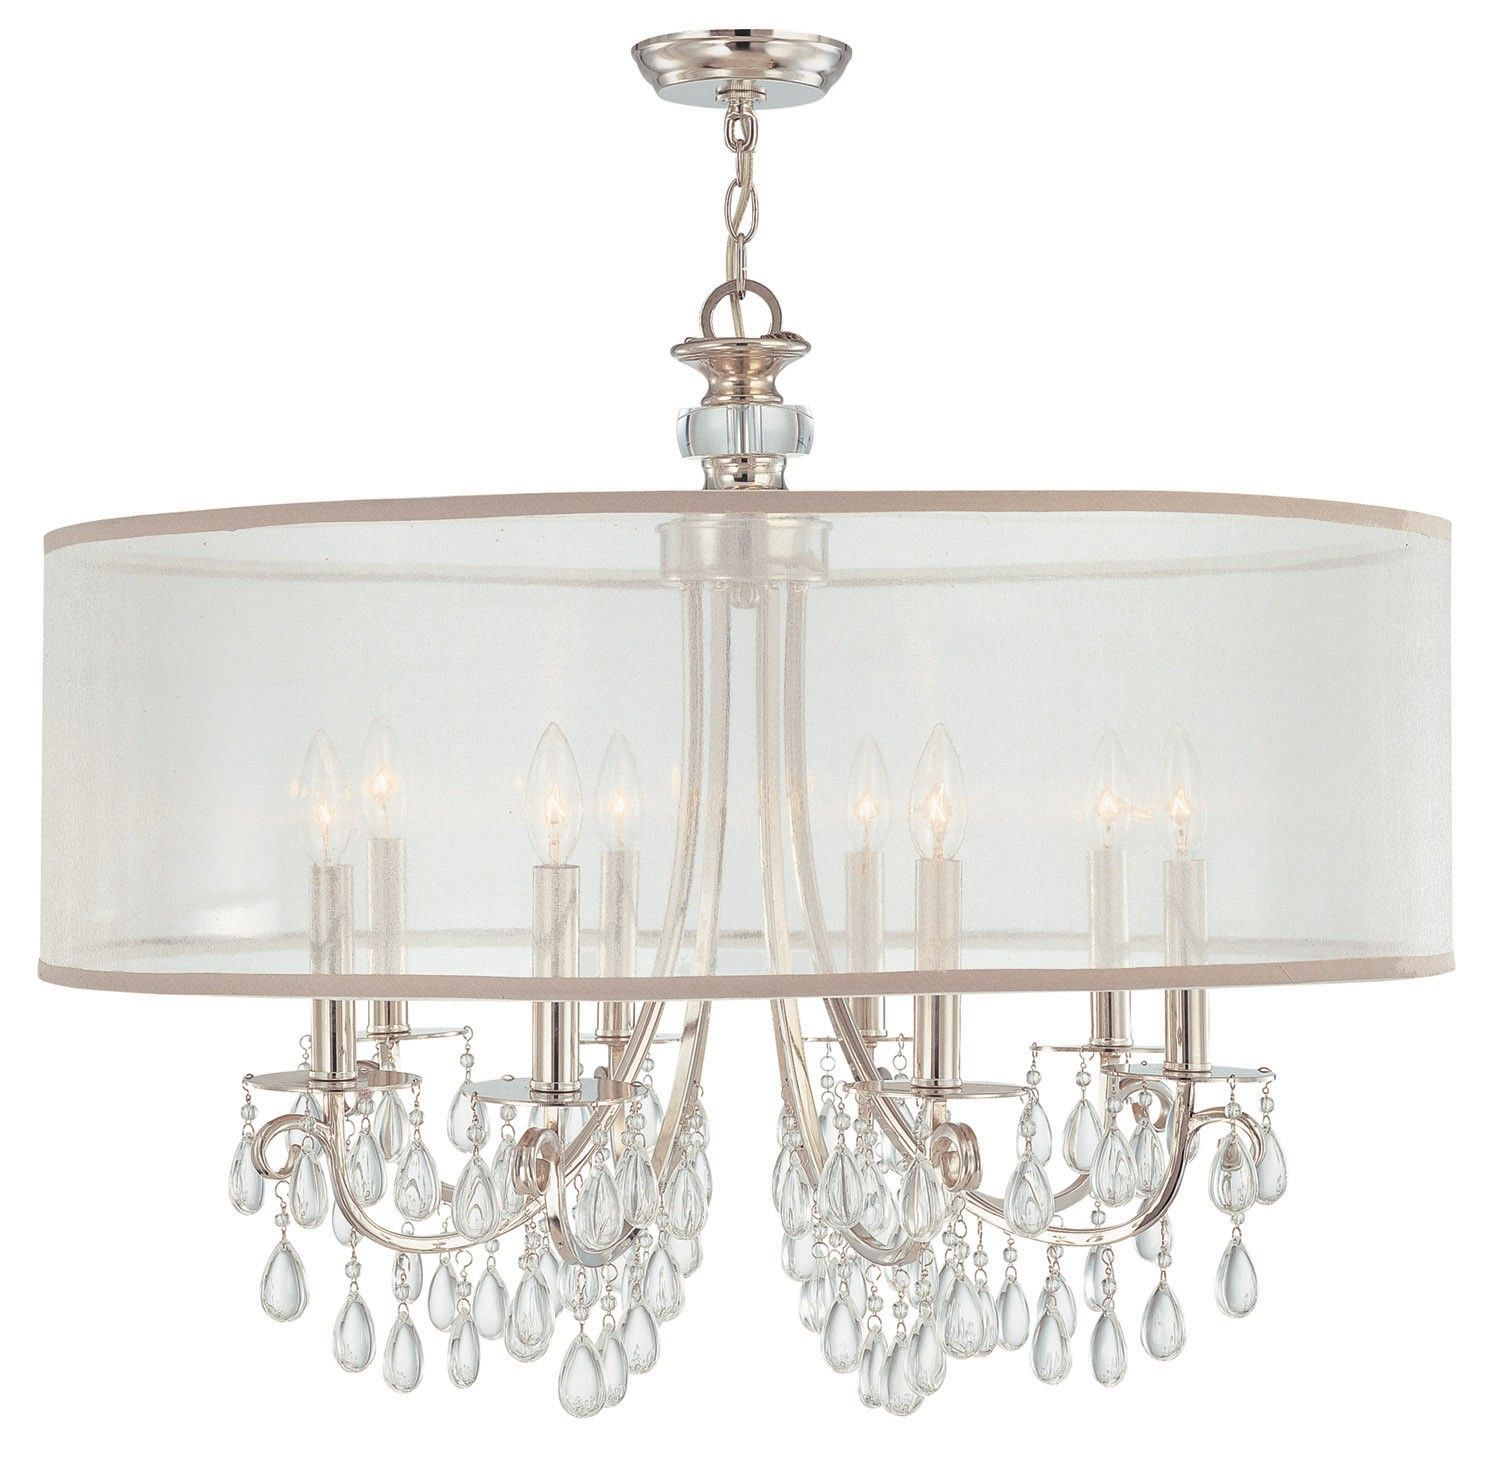 "Hampton 8 Light 32"" Polished Chrome Crystal Chandelier with Silver"